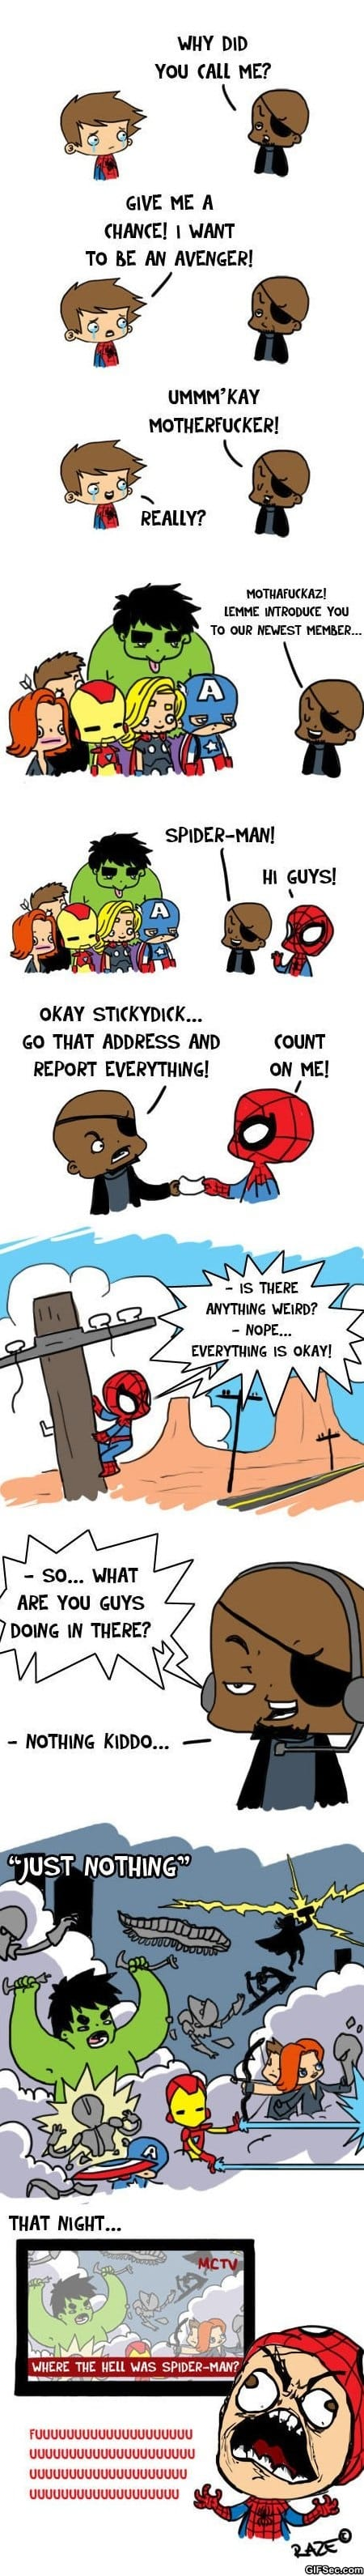 Funny - Avengers and Spiderman